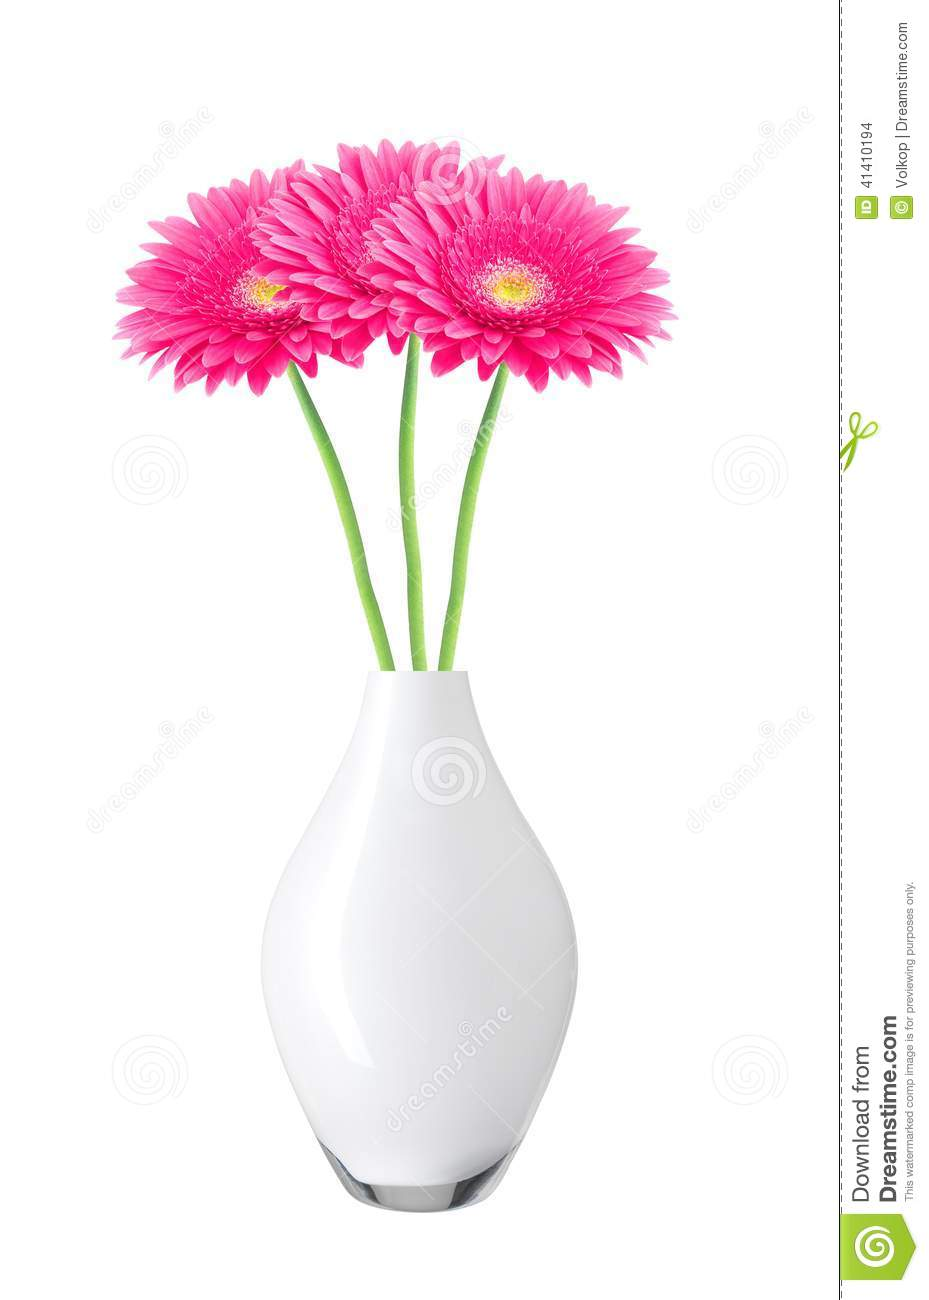 Beautiful Pink Gerbera Daisy Flowers In Vase Isolated On White Stock